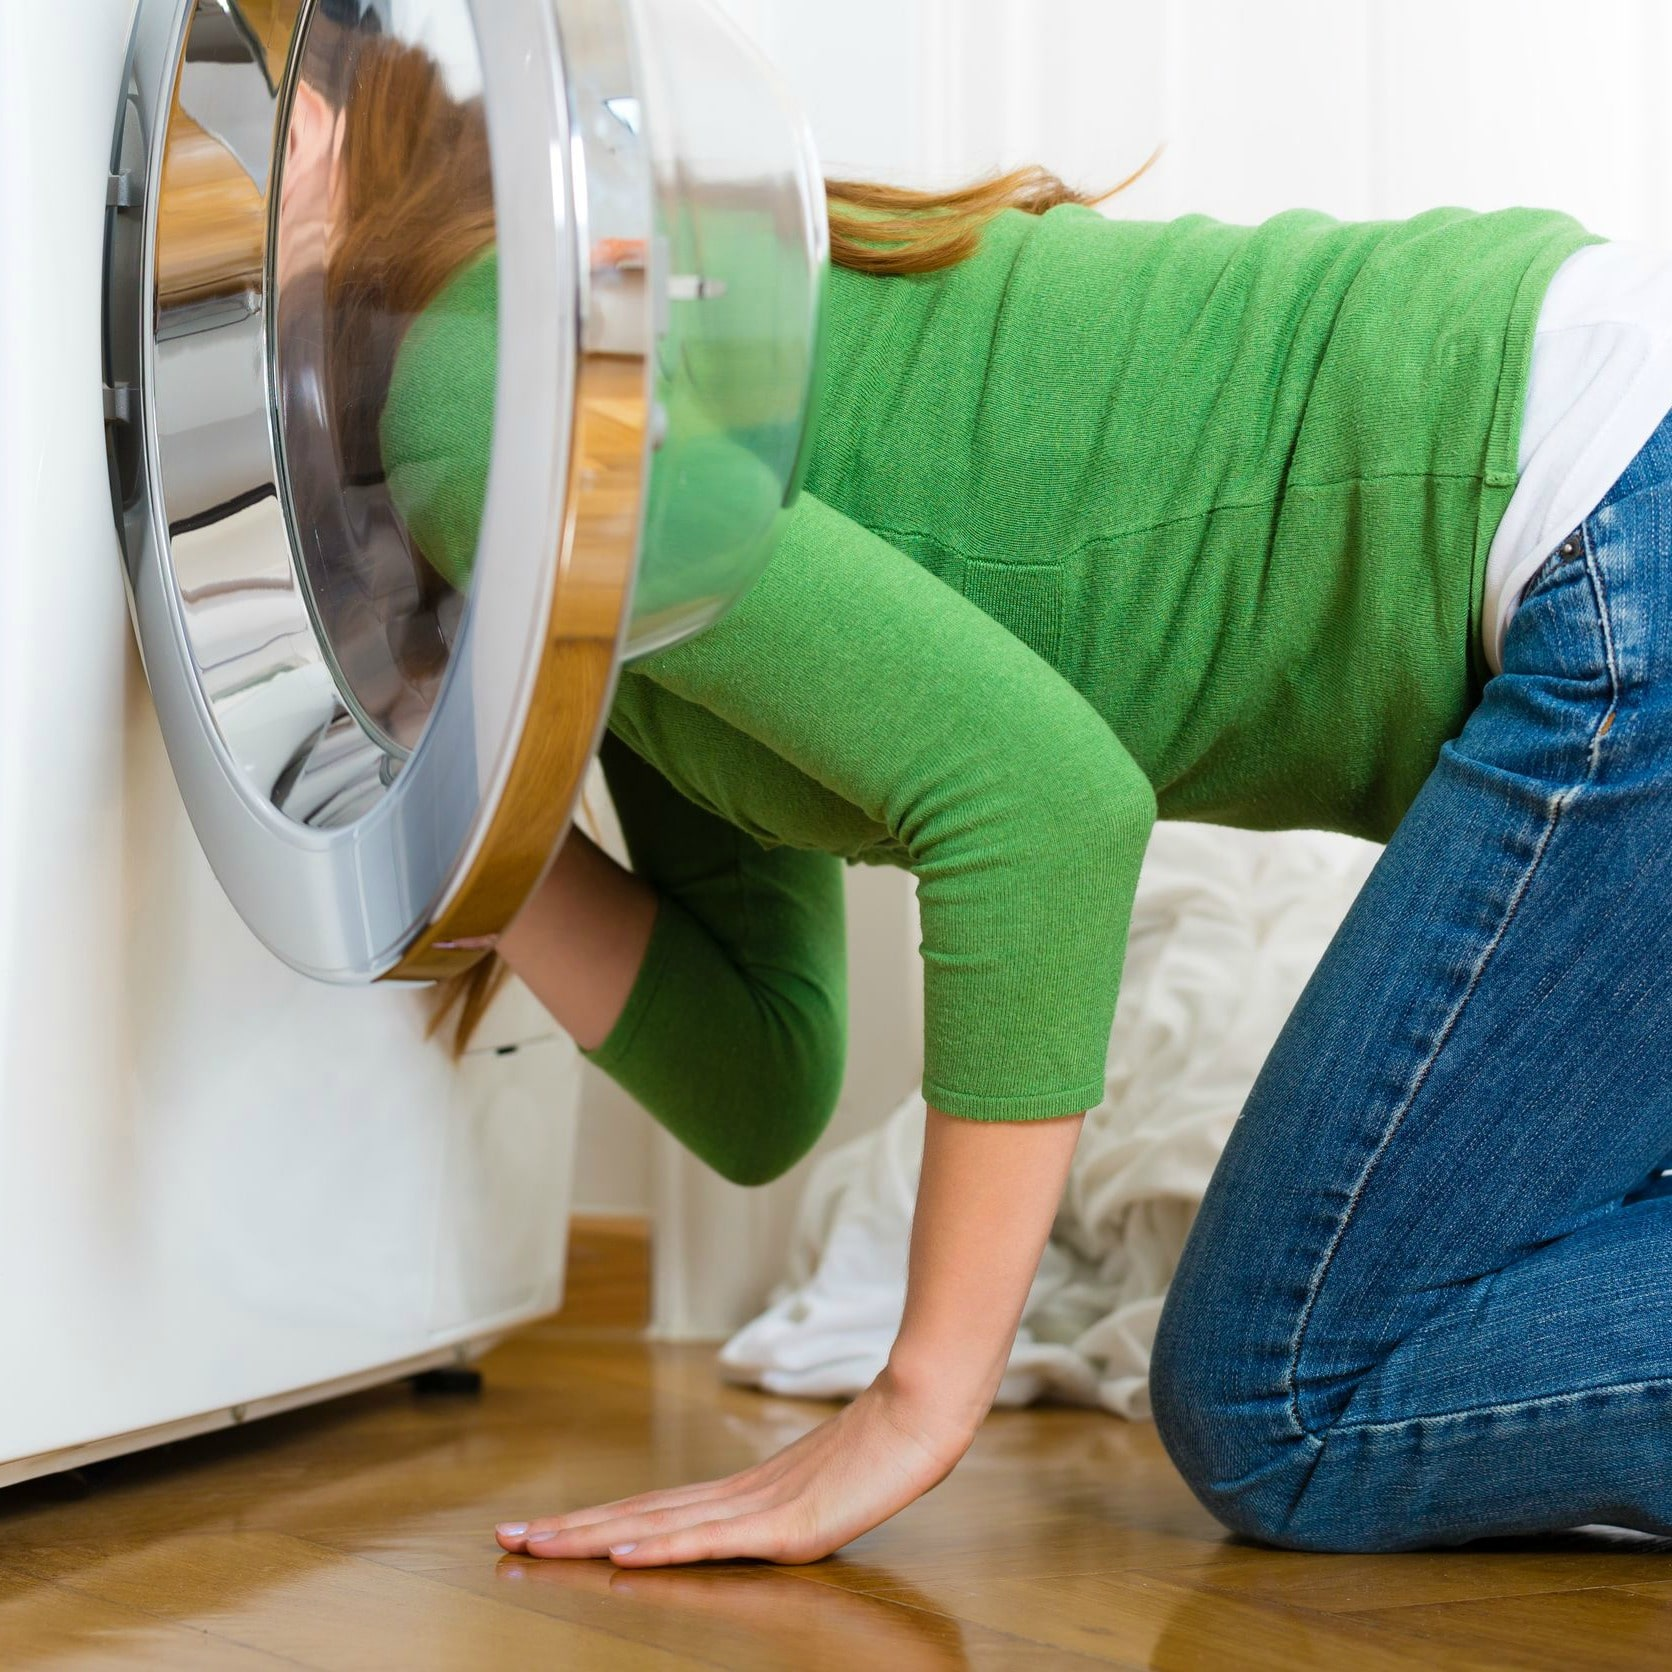 Cleaning your washing machines is important.